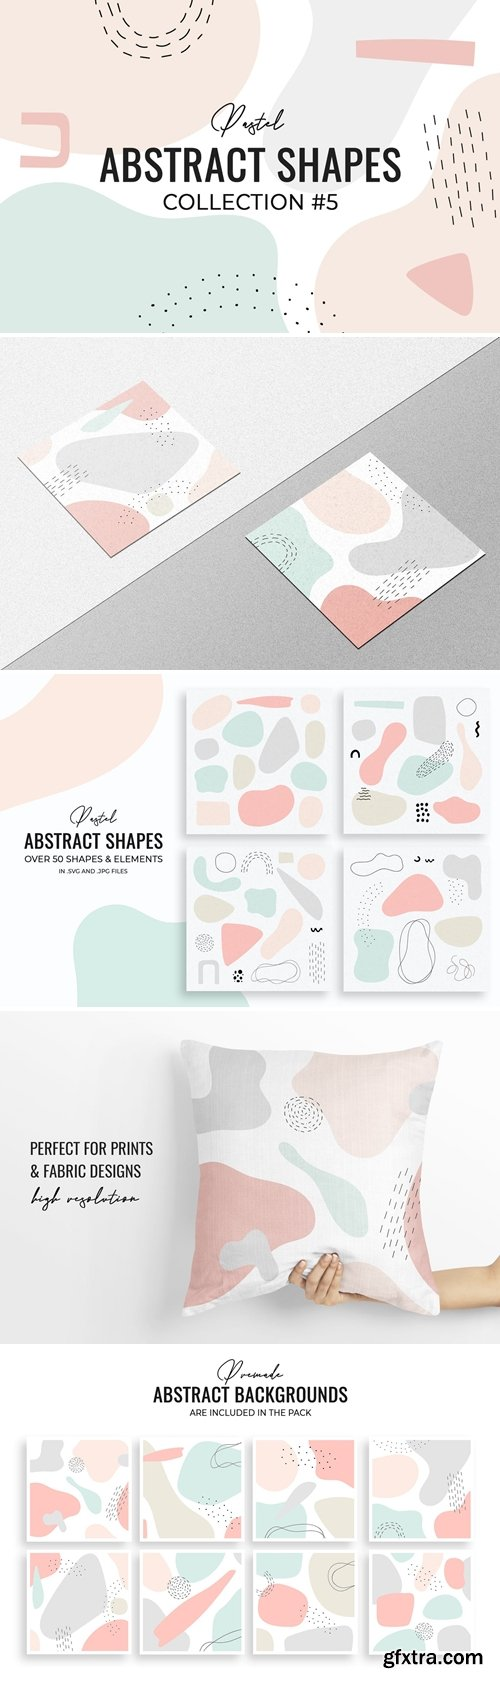 Pastel Abstract Shapes #5